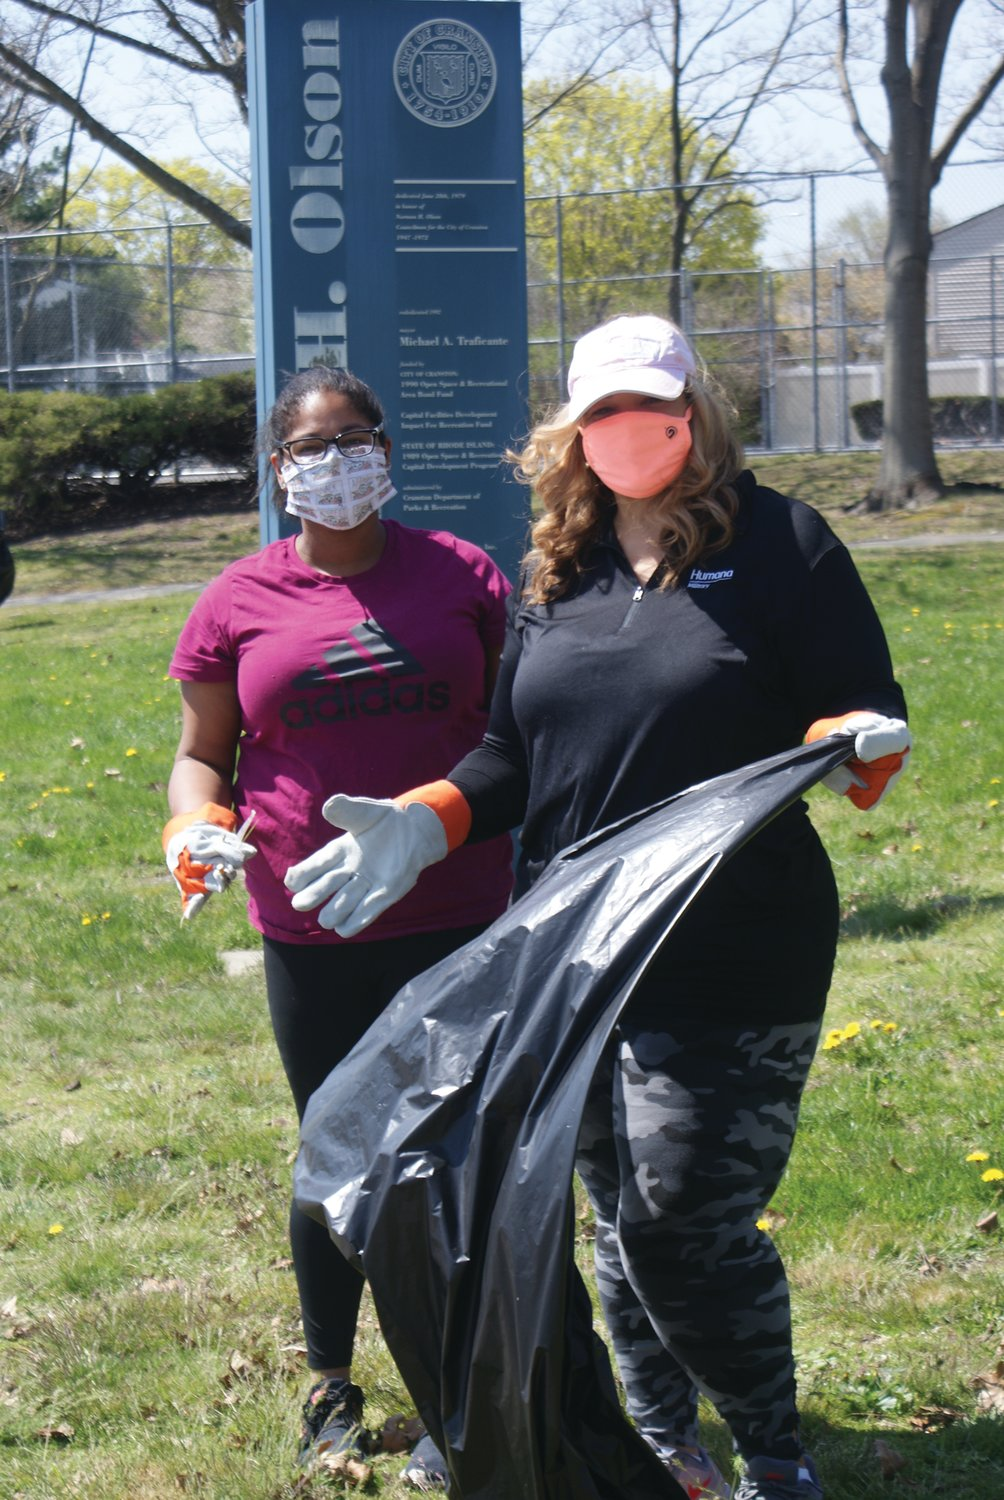 DAY AT THE PARK: Laura Genereux and her mother, Eugenie, worked together at the Earth Day cleanup at Doric Park.